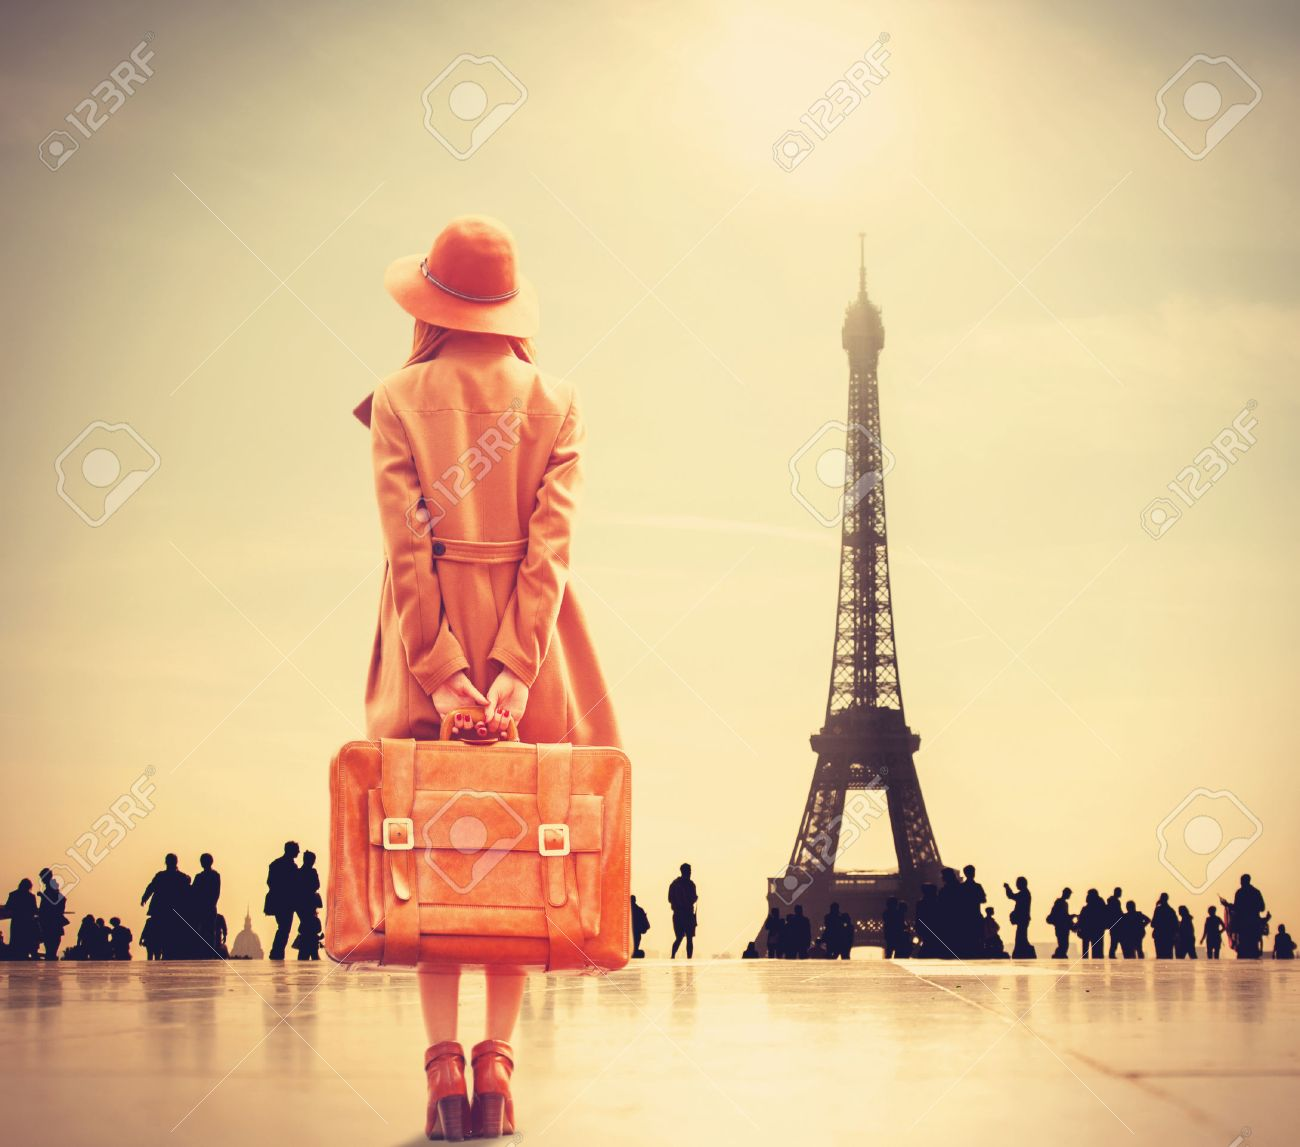 Redhead girl with suitcase on Eiffel tower background - 37324600